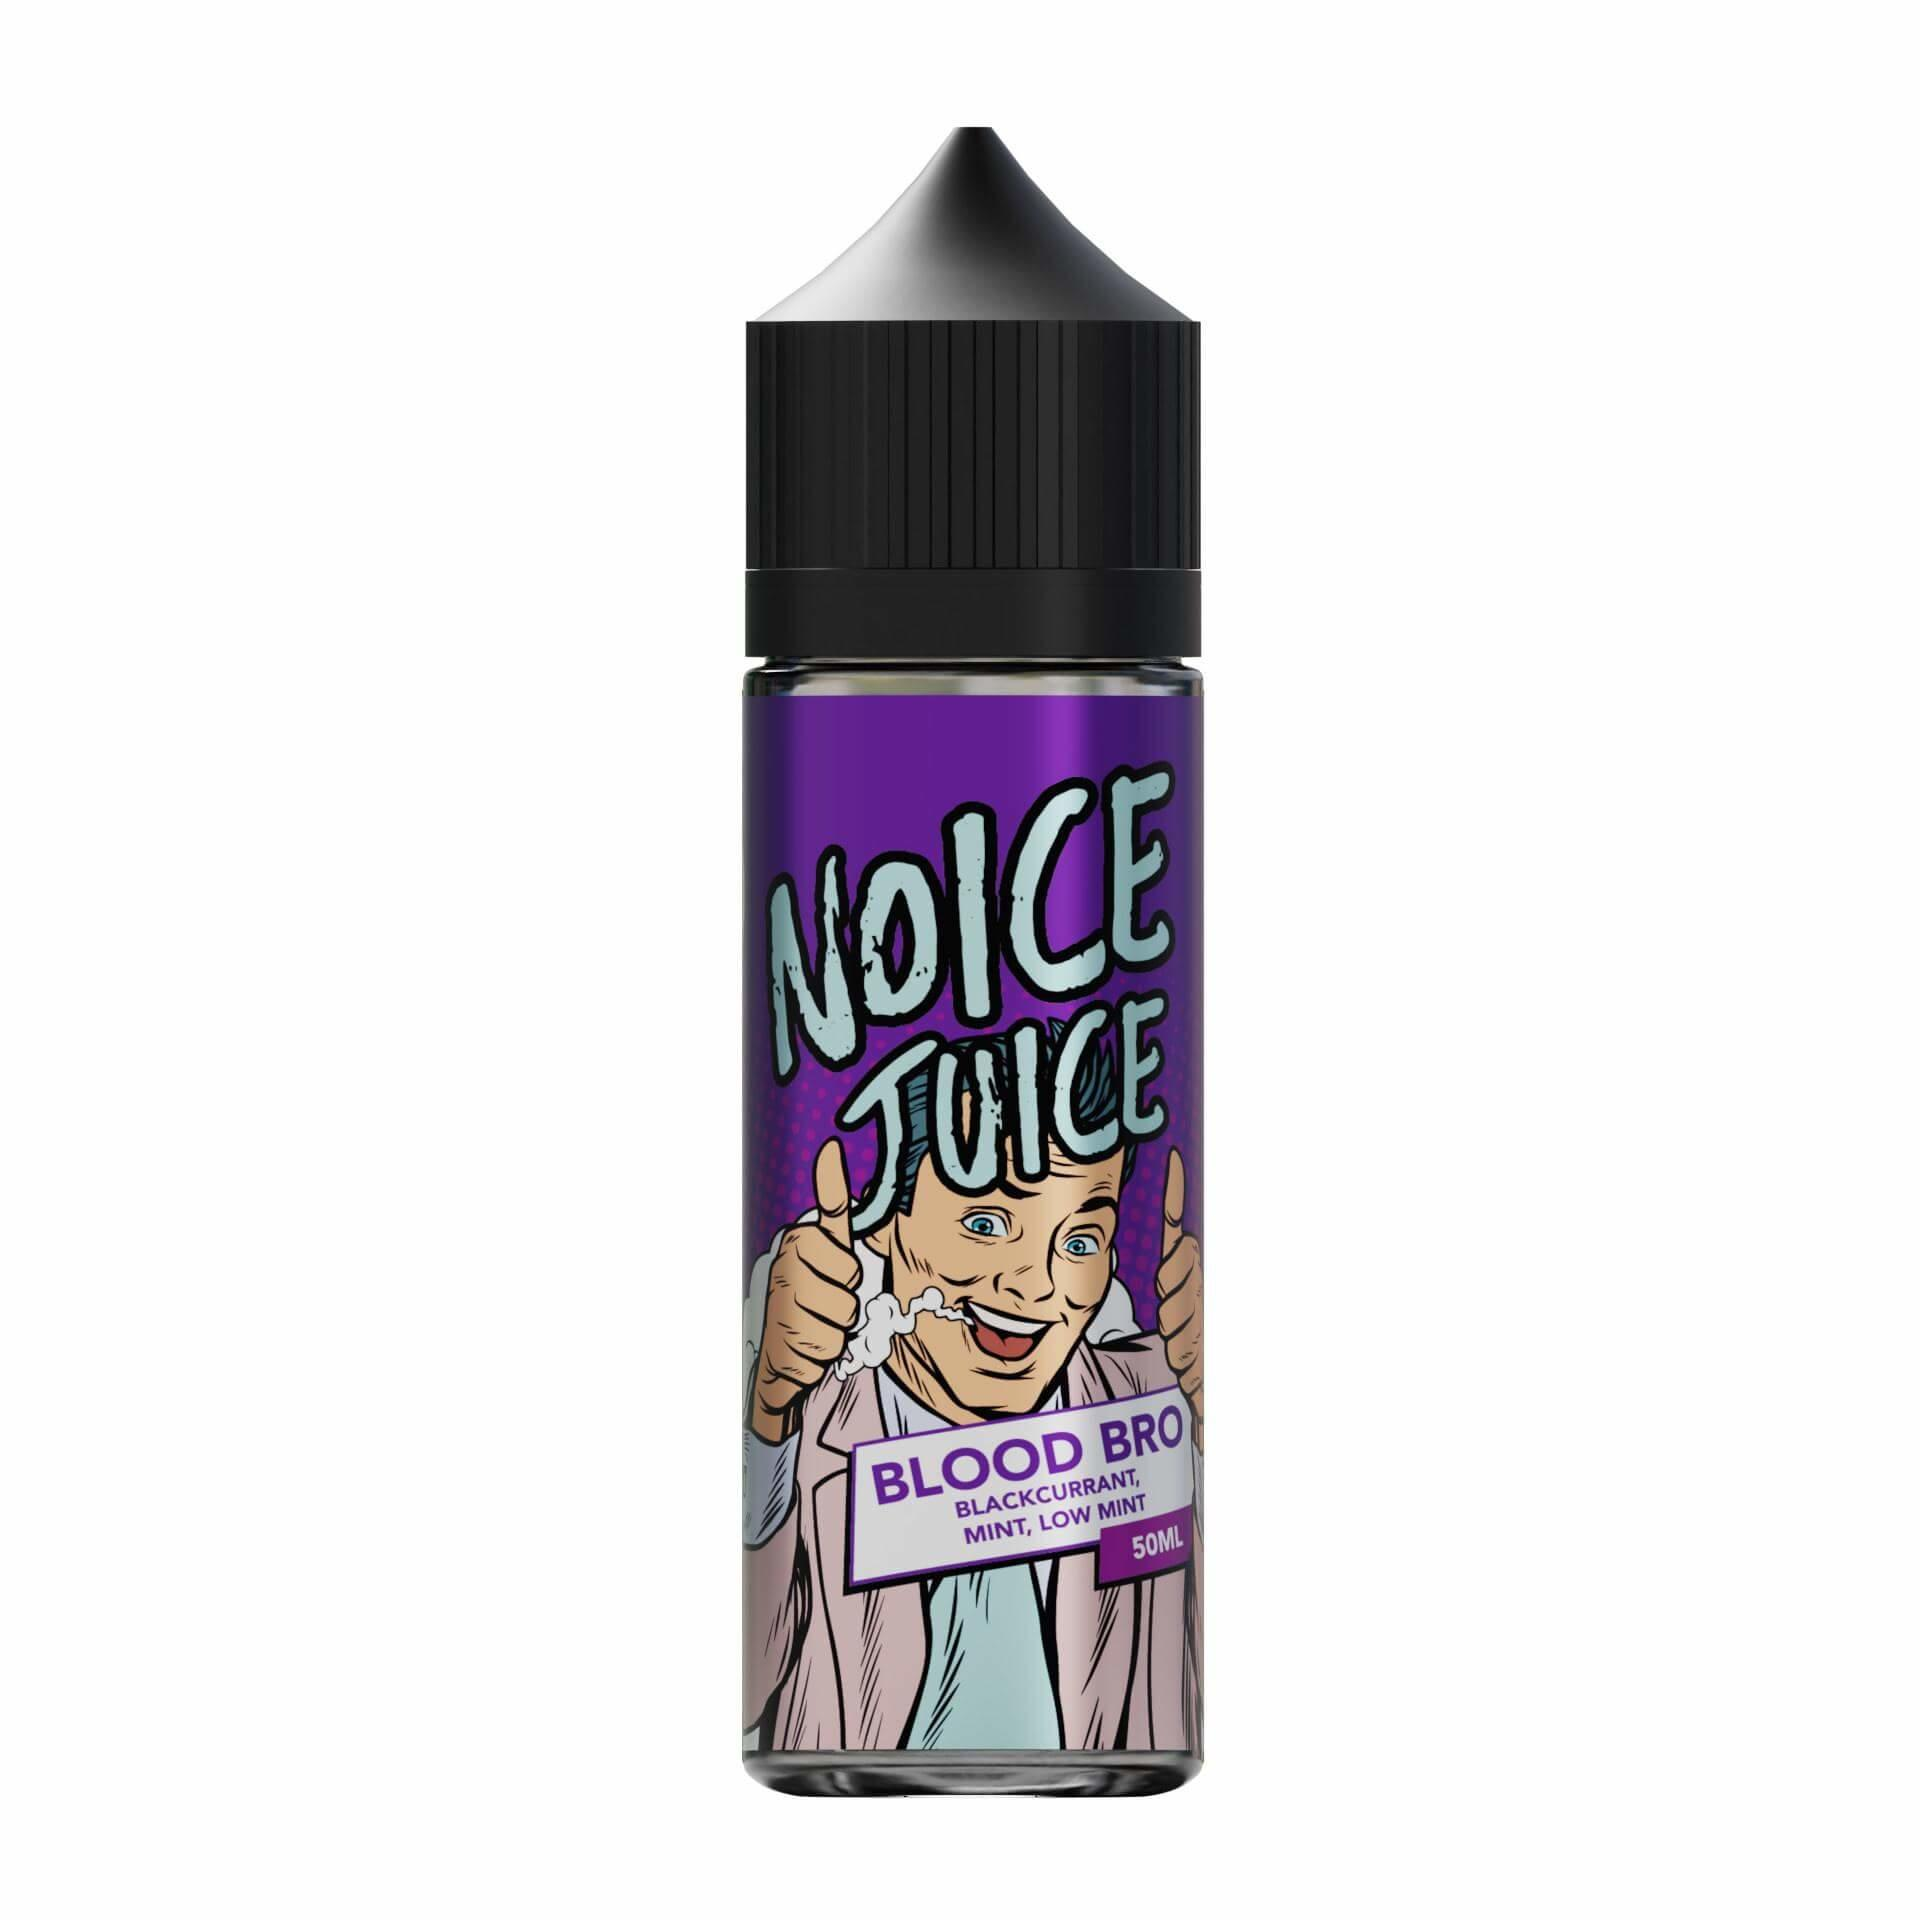 Blood Bro Noice Range 0mg Short Fill E Liquid